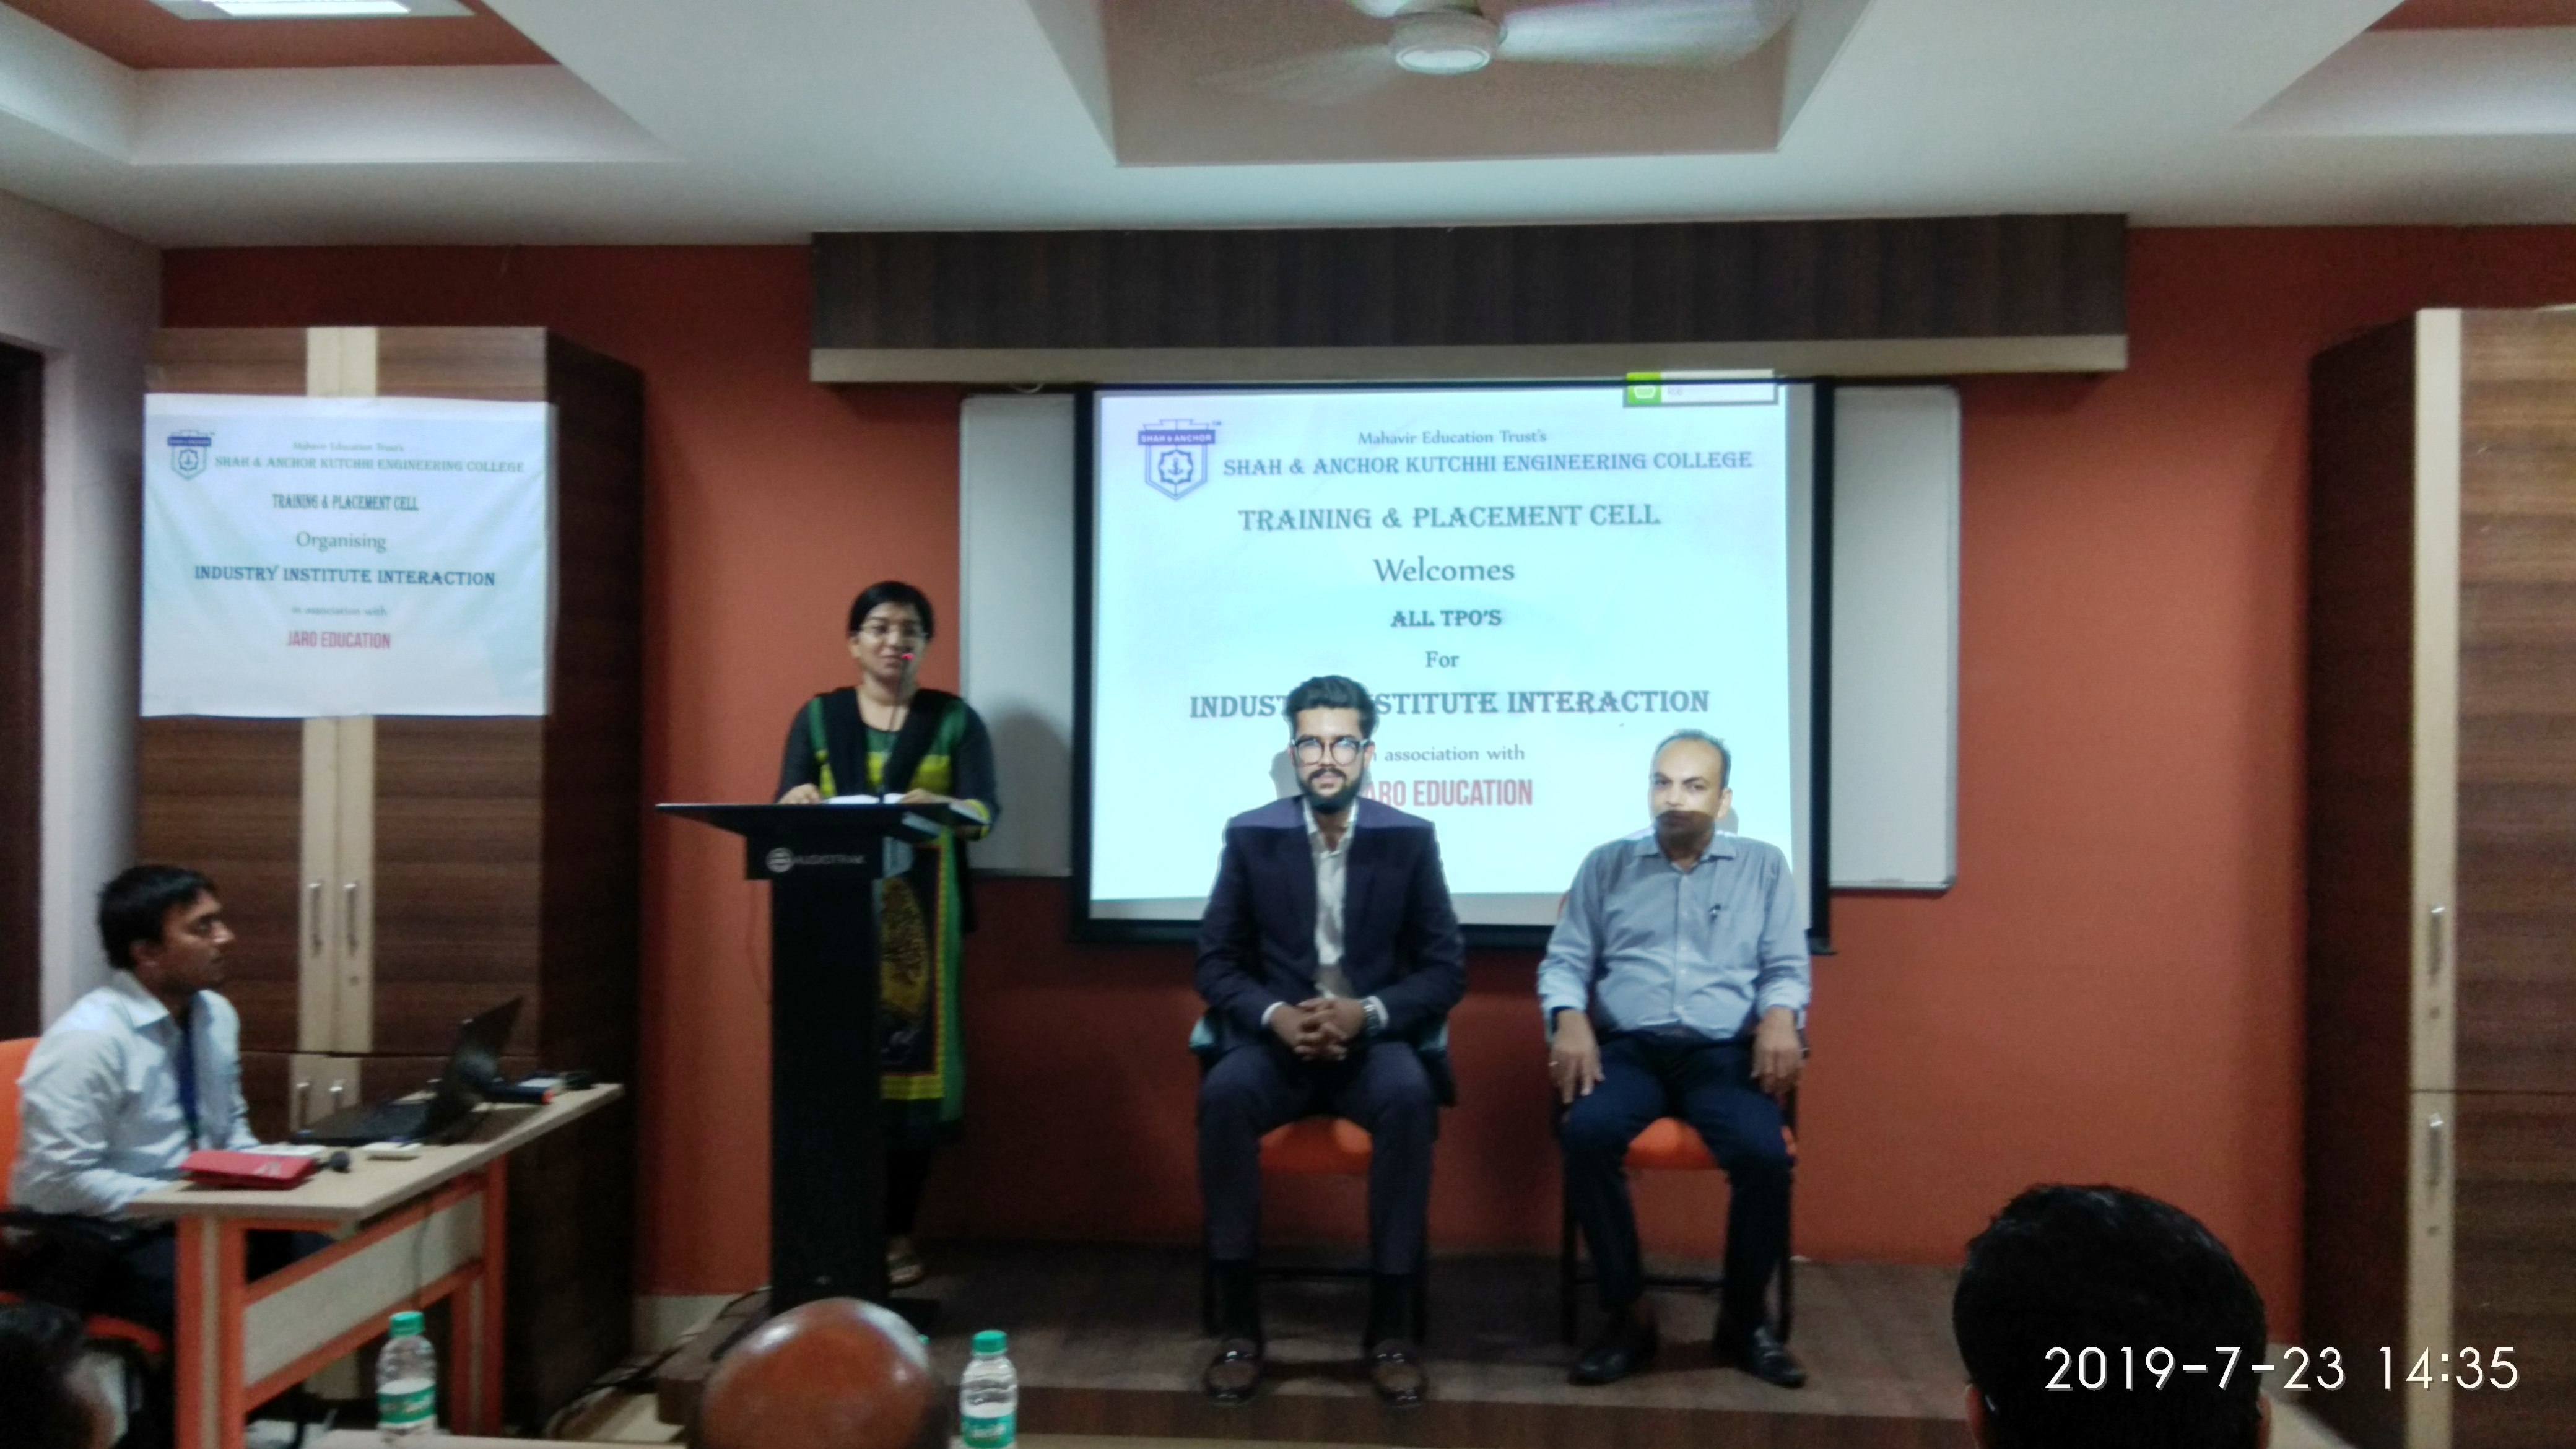 Industry Institute Interaction Session